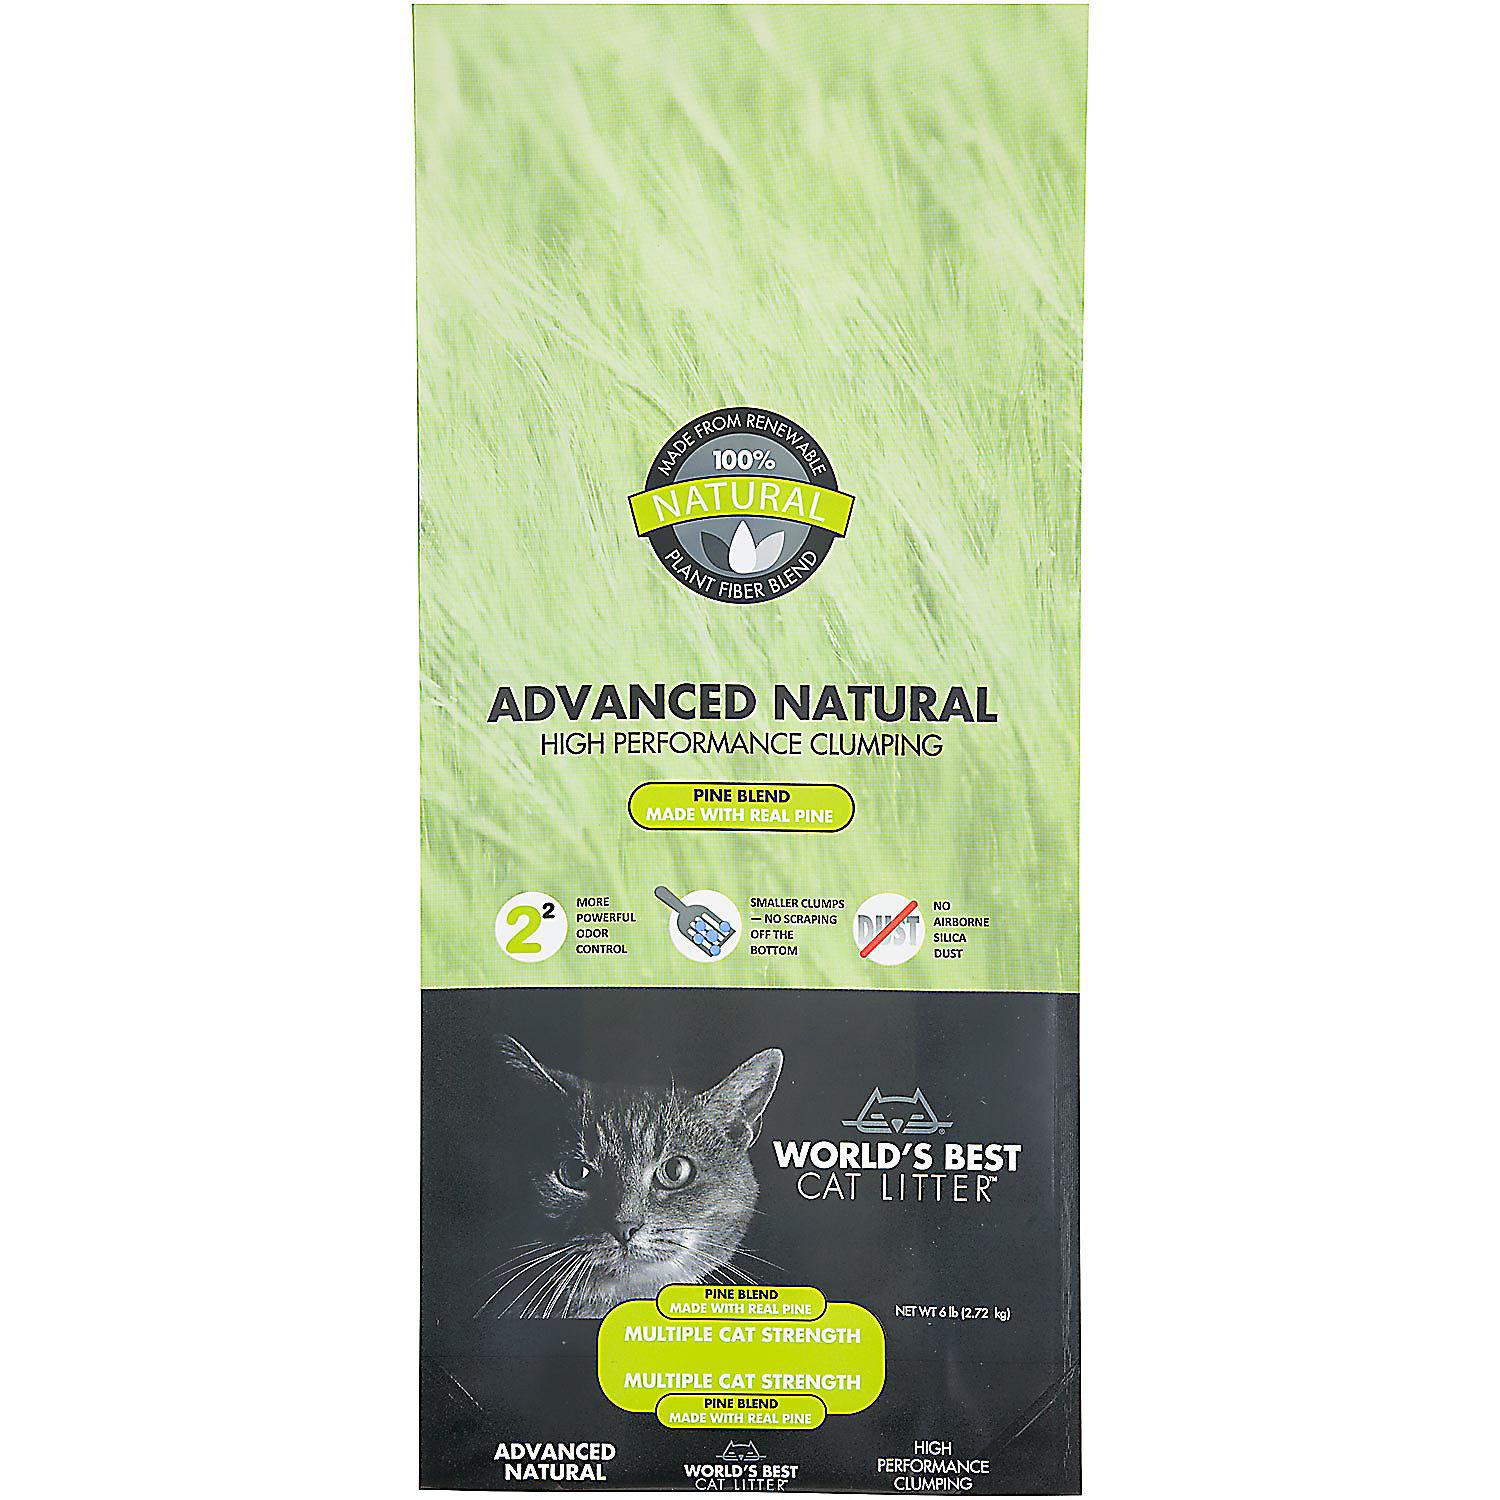 World's Best Cat Litter Advanced Natural High Performance Clumping Pine Blend, 6 lbs (A.Q5)